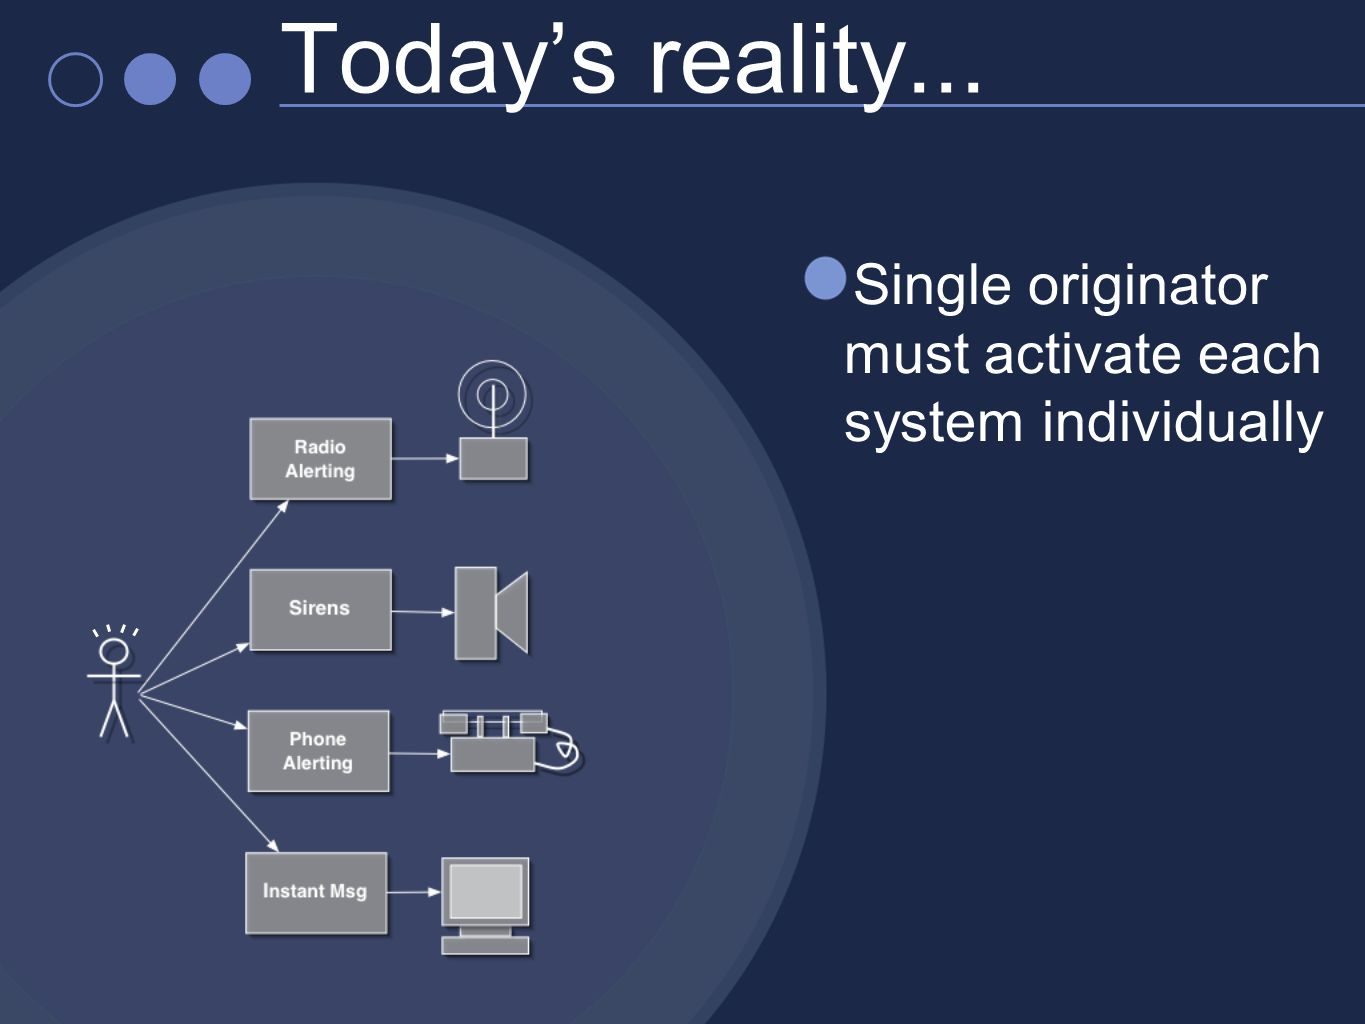 Single originator must activate each system individually Todays reality...